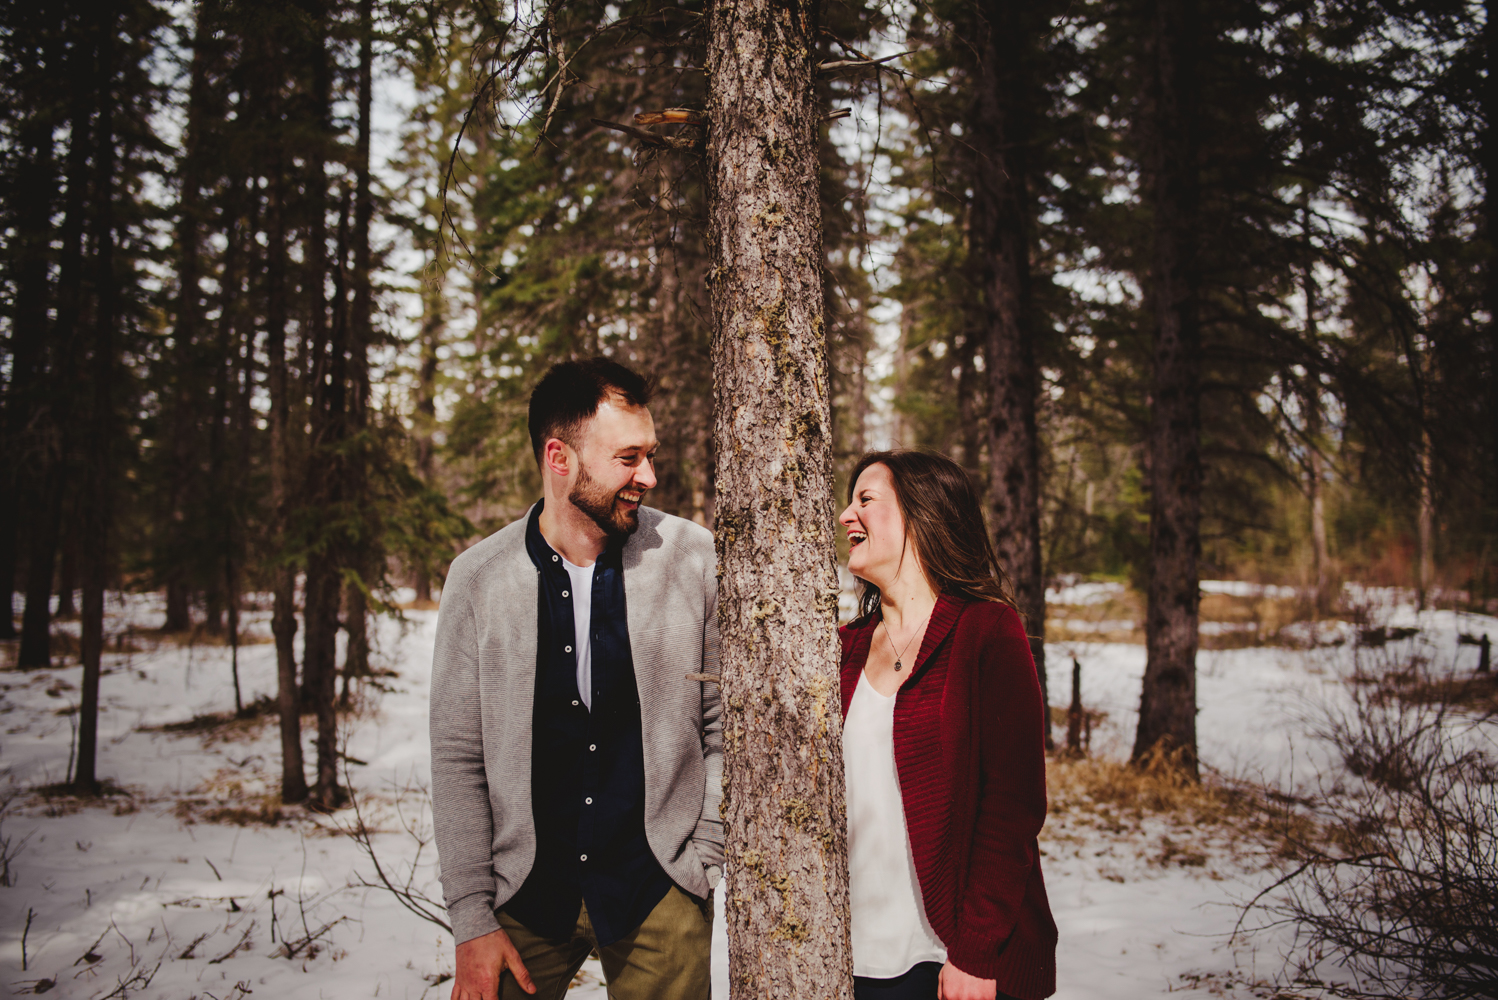 Calgary-Wedding-Photographer-Engagement-56.jpg